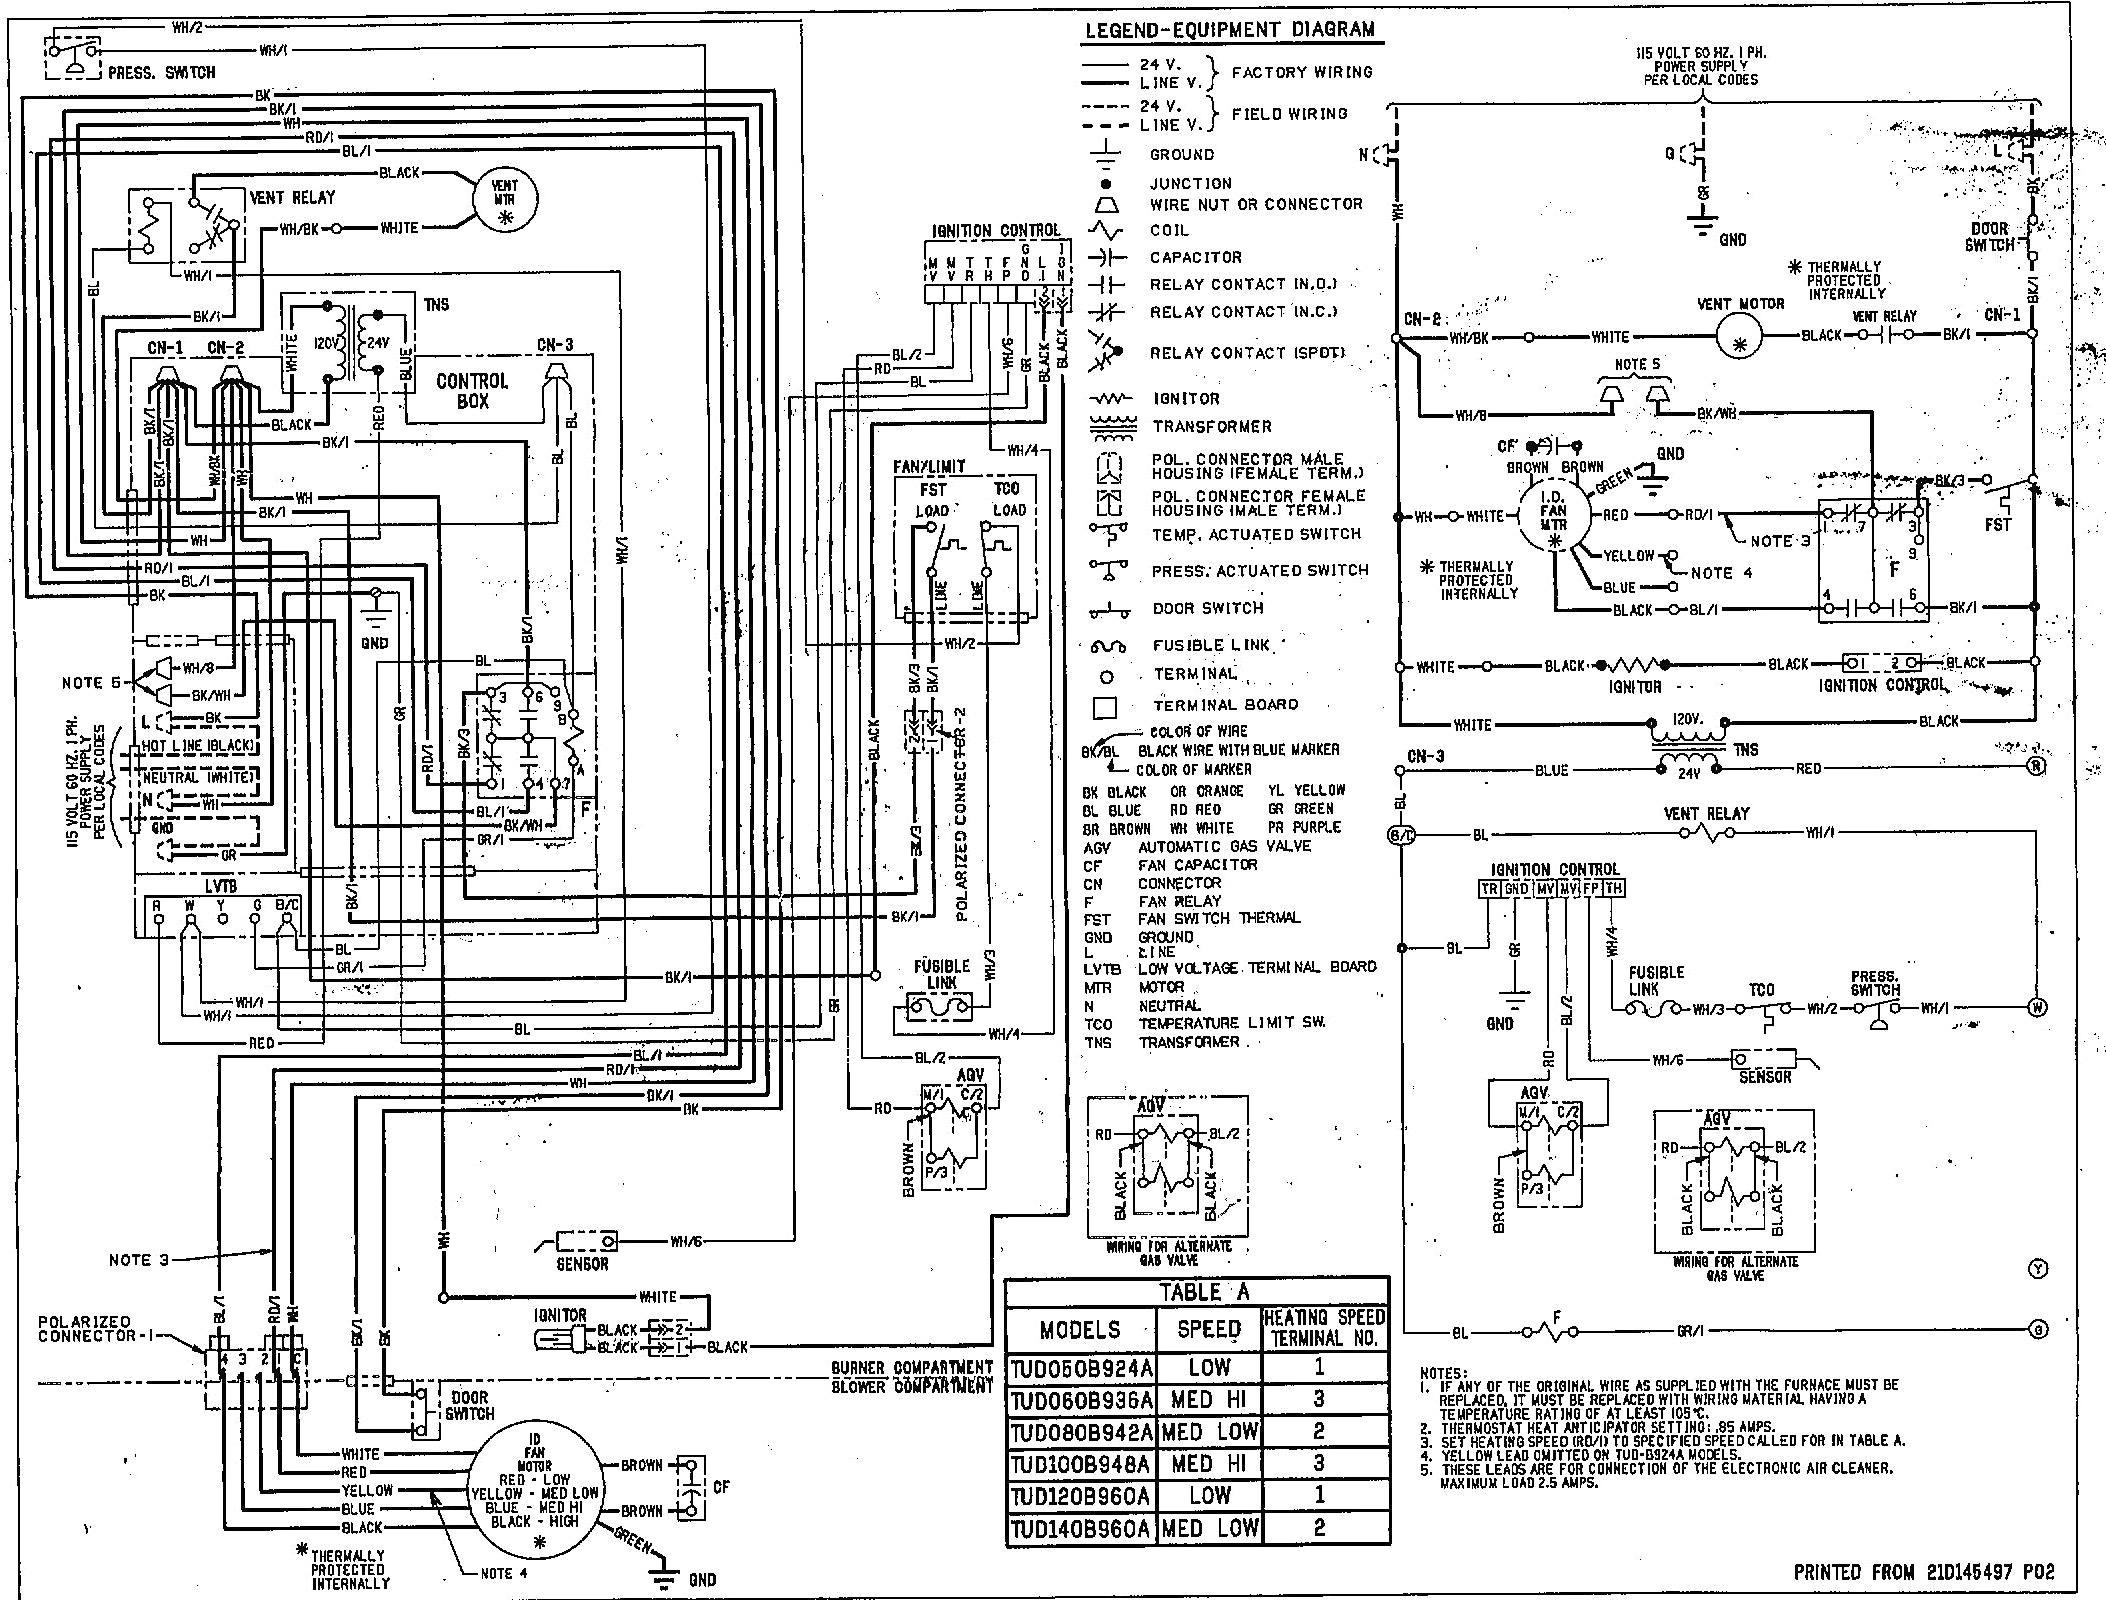 trane furnace wiring diagram | free wiring diagram rheem hvac wiring diagrams